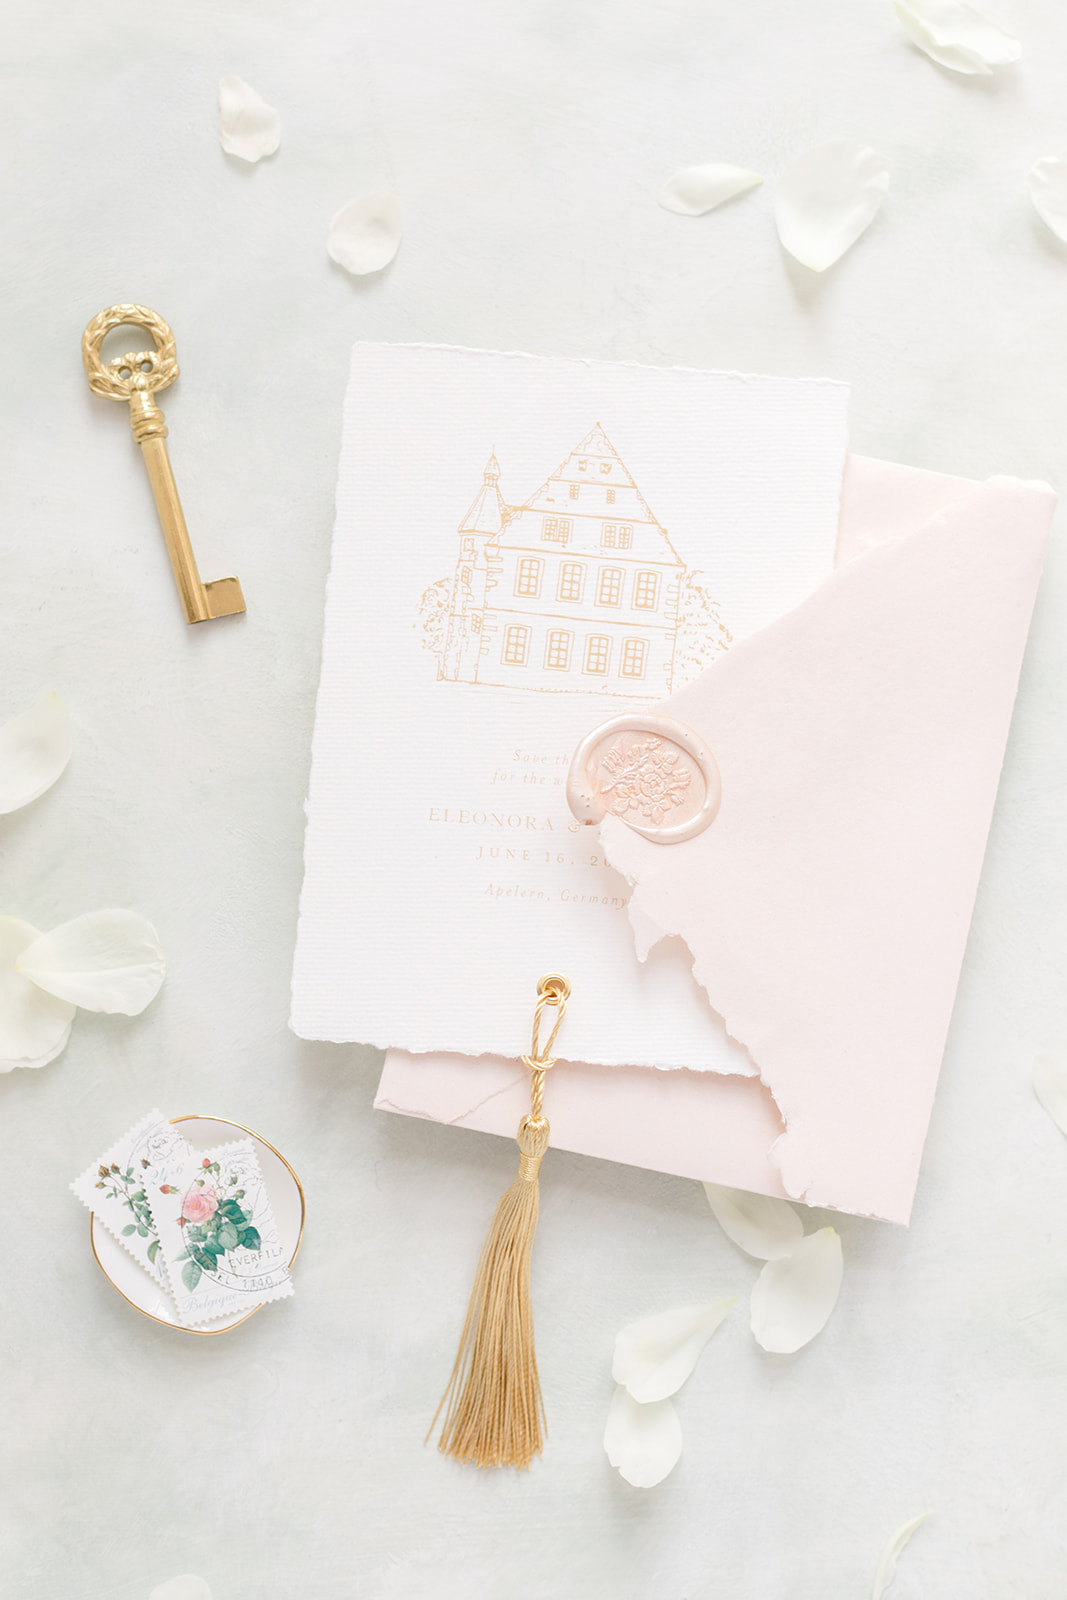 bonjour paper save the date card featuring the sketch of the castle